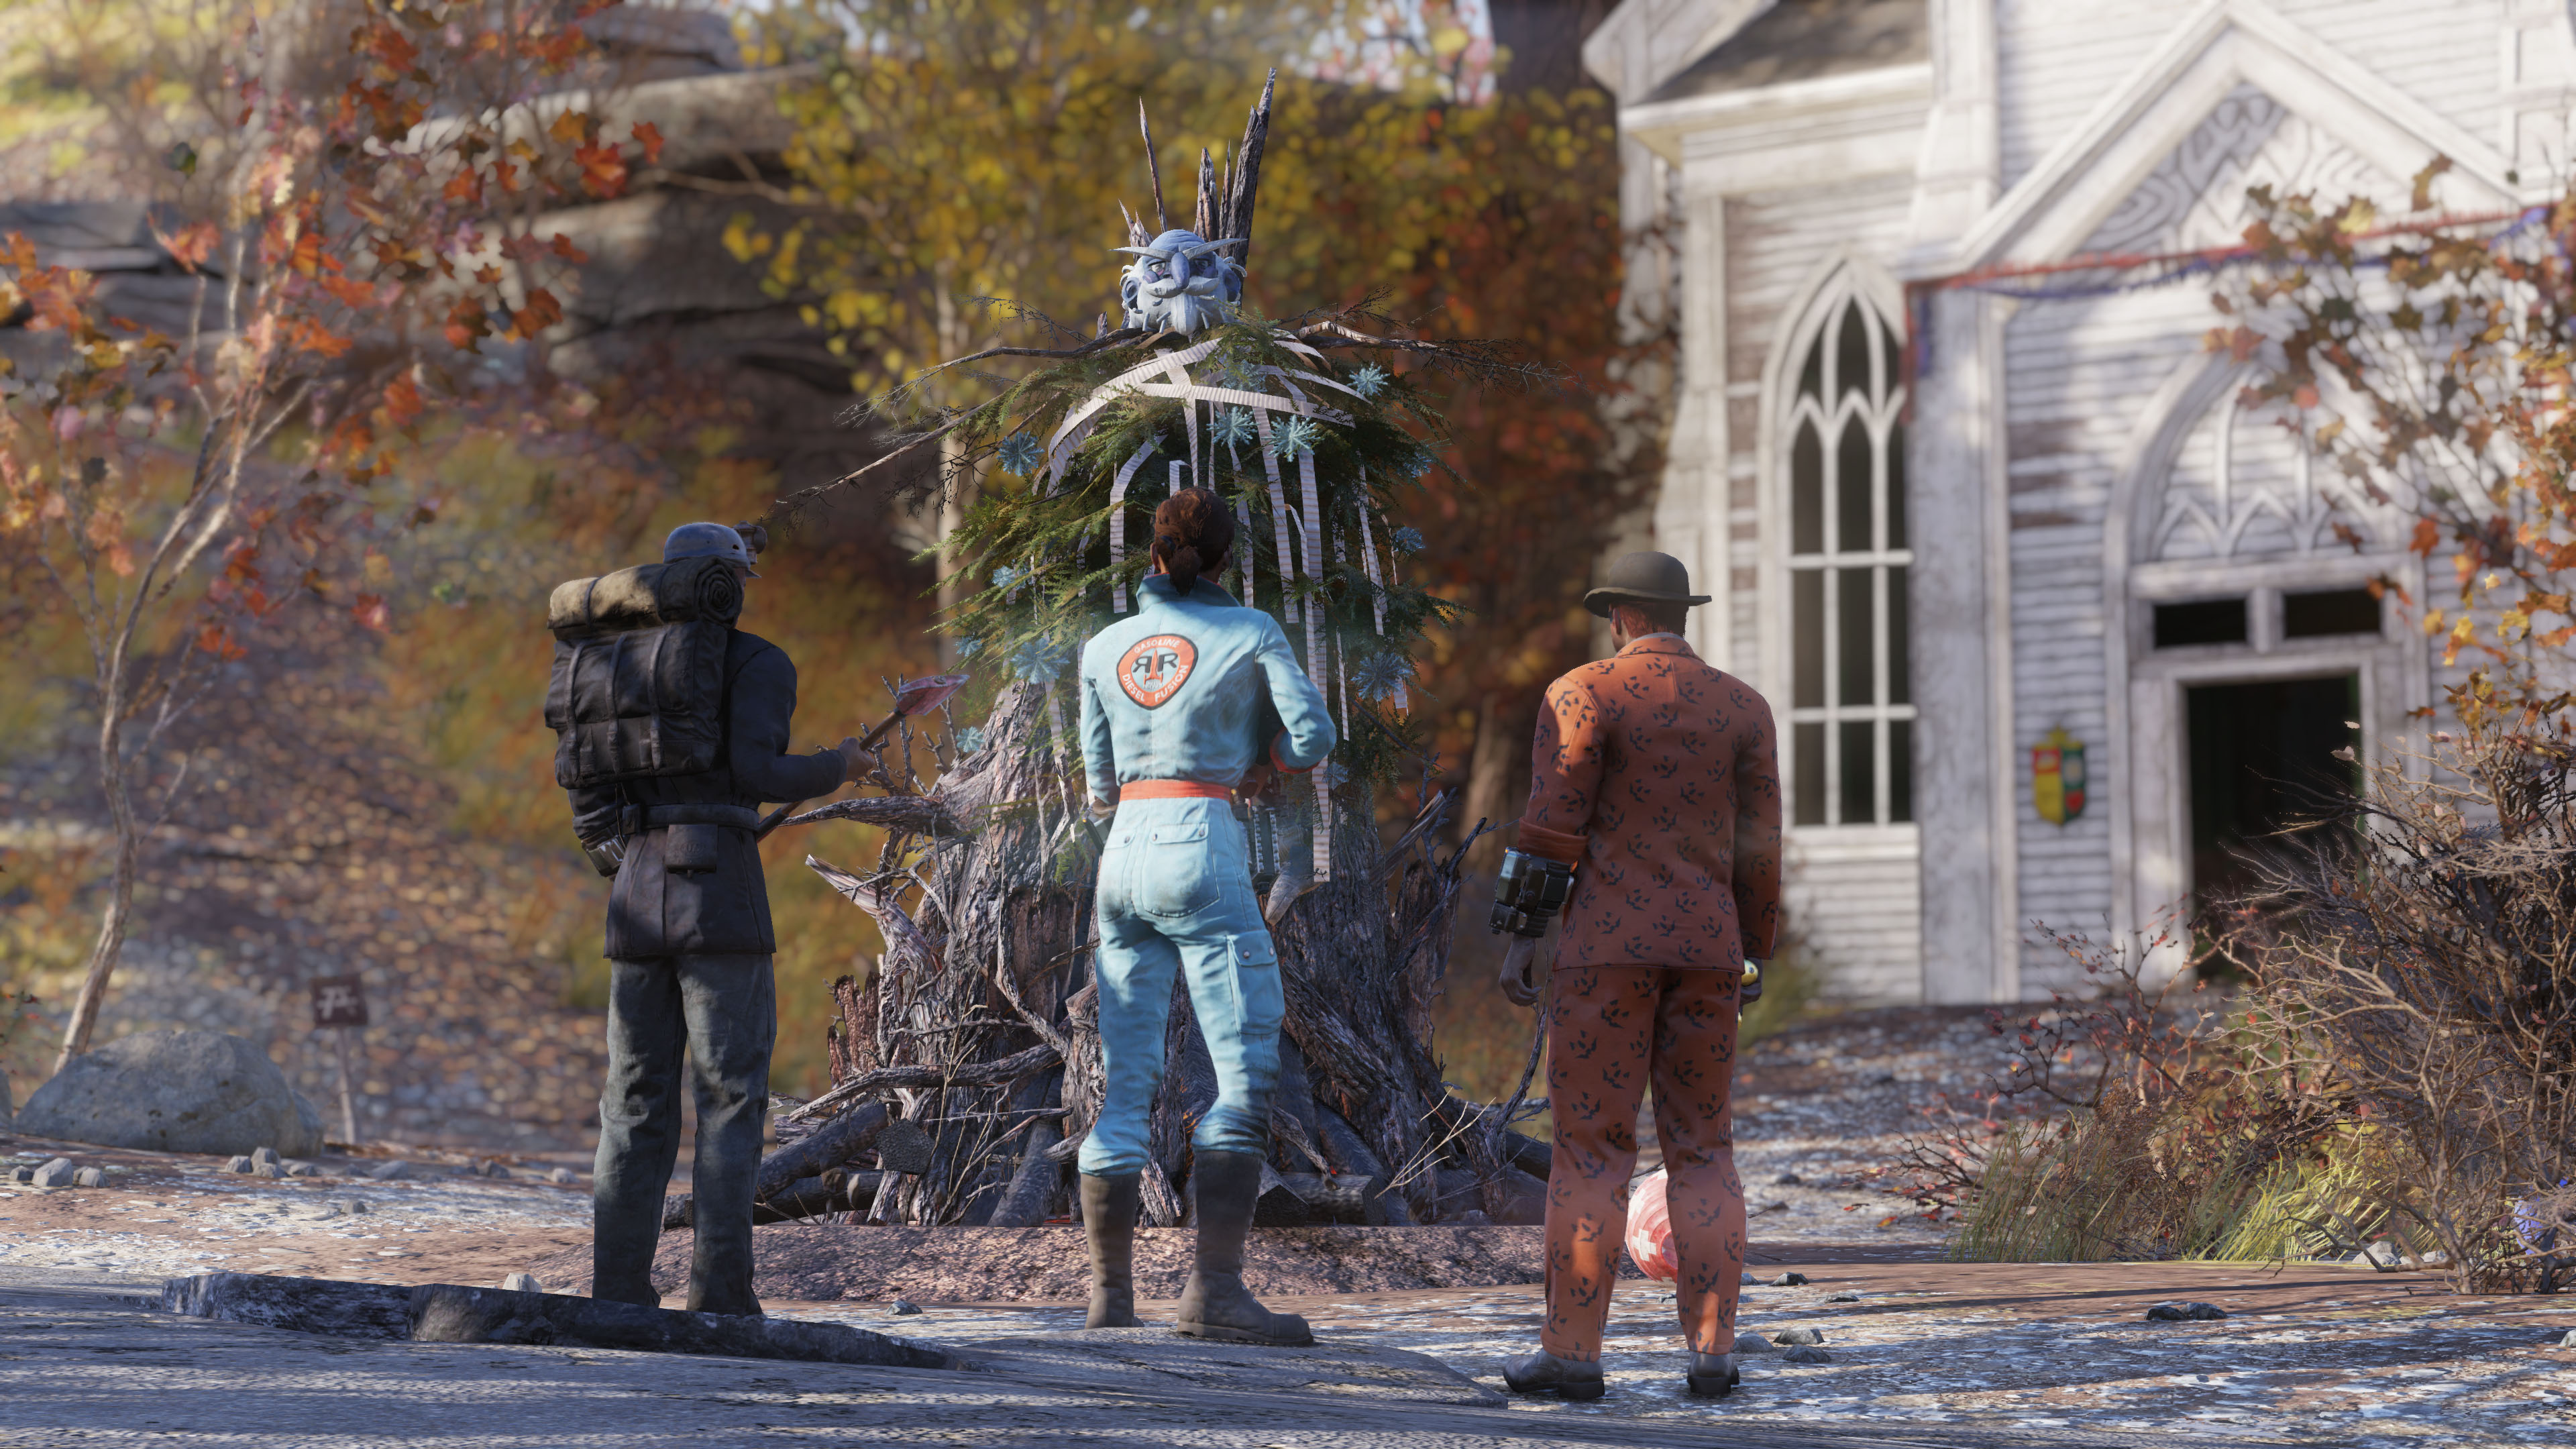 Fallout 76 | Inside the Vault: Fasnacht Seasonal Event and